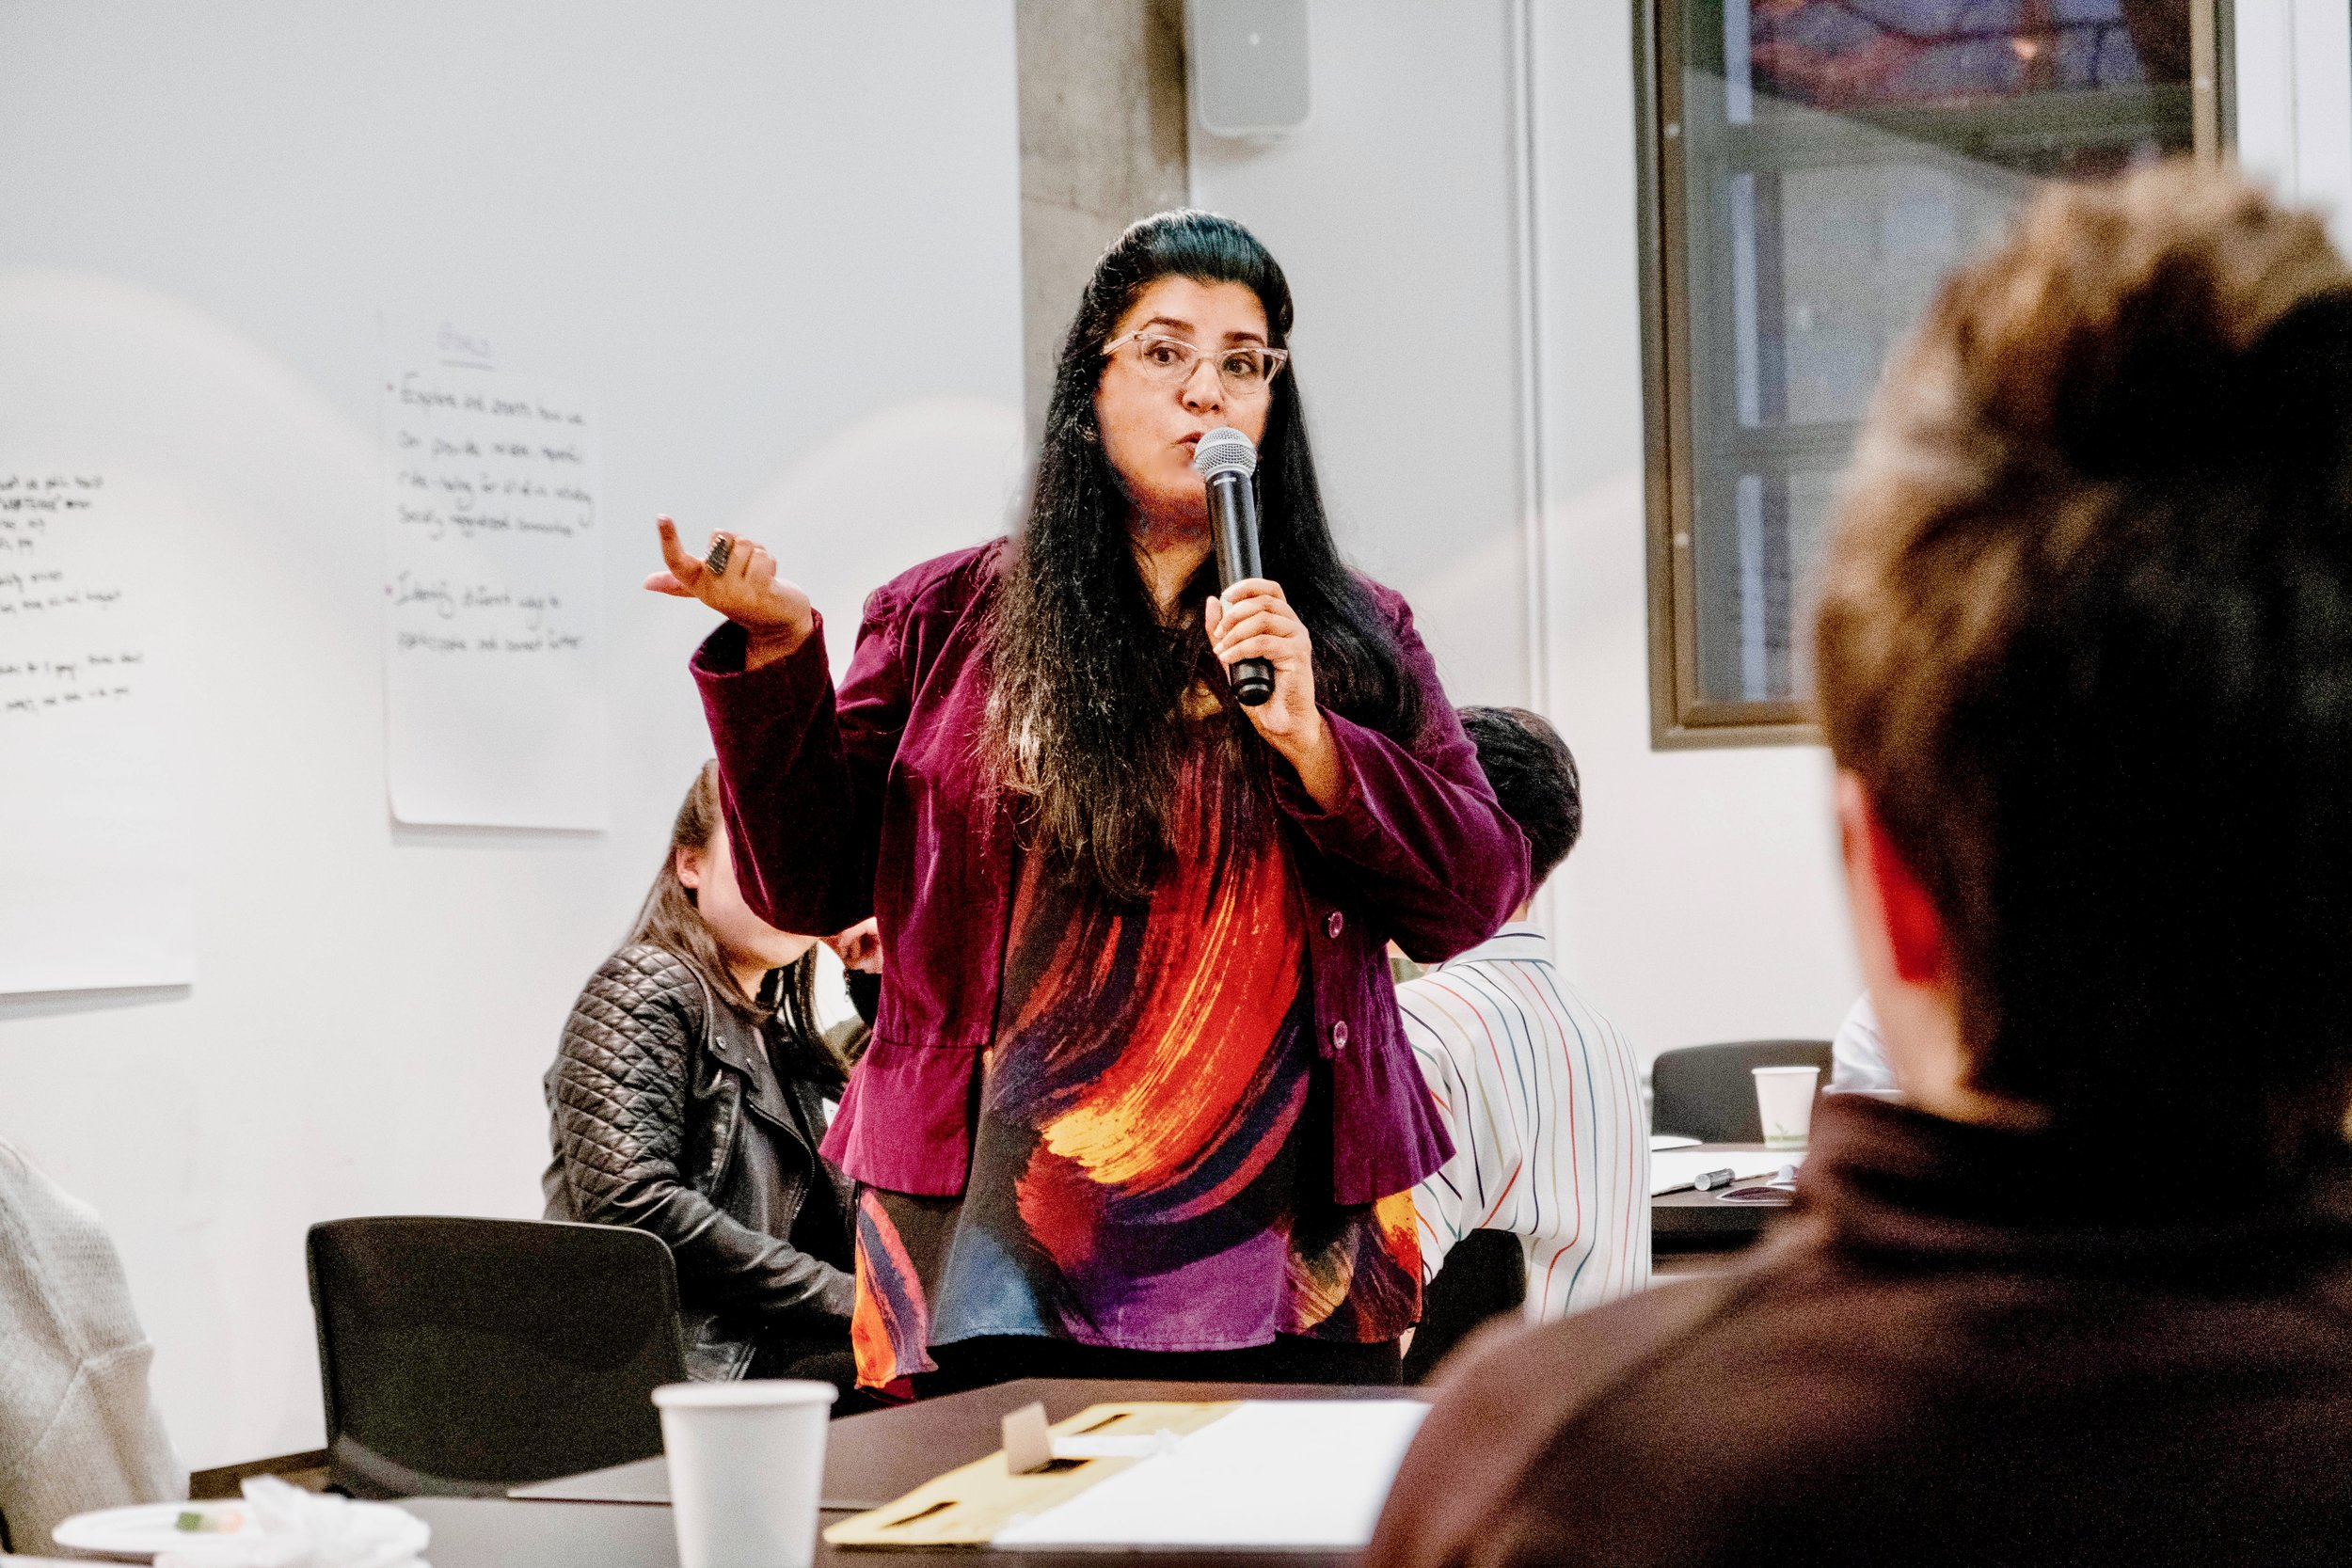 Cambium Principal and Creative Director Amal Rana facilitating a multi-stakeholder public engagement process.  Photo credit for this image and banner image: David Morino.